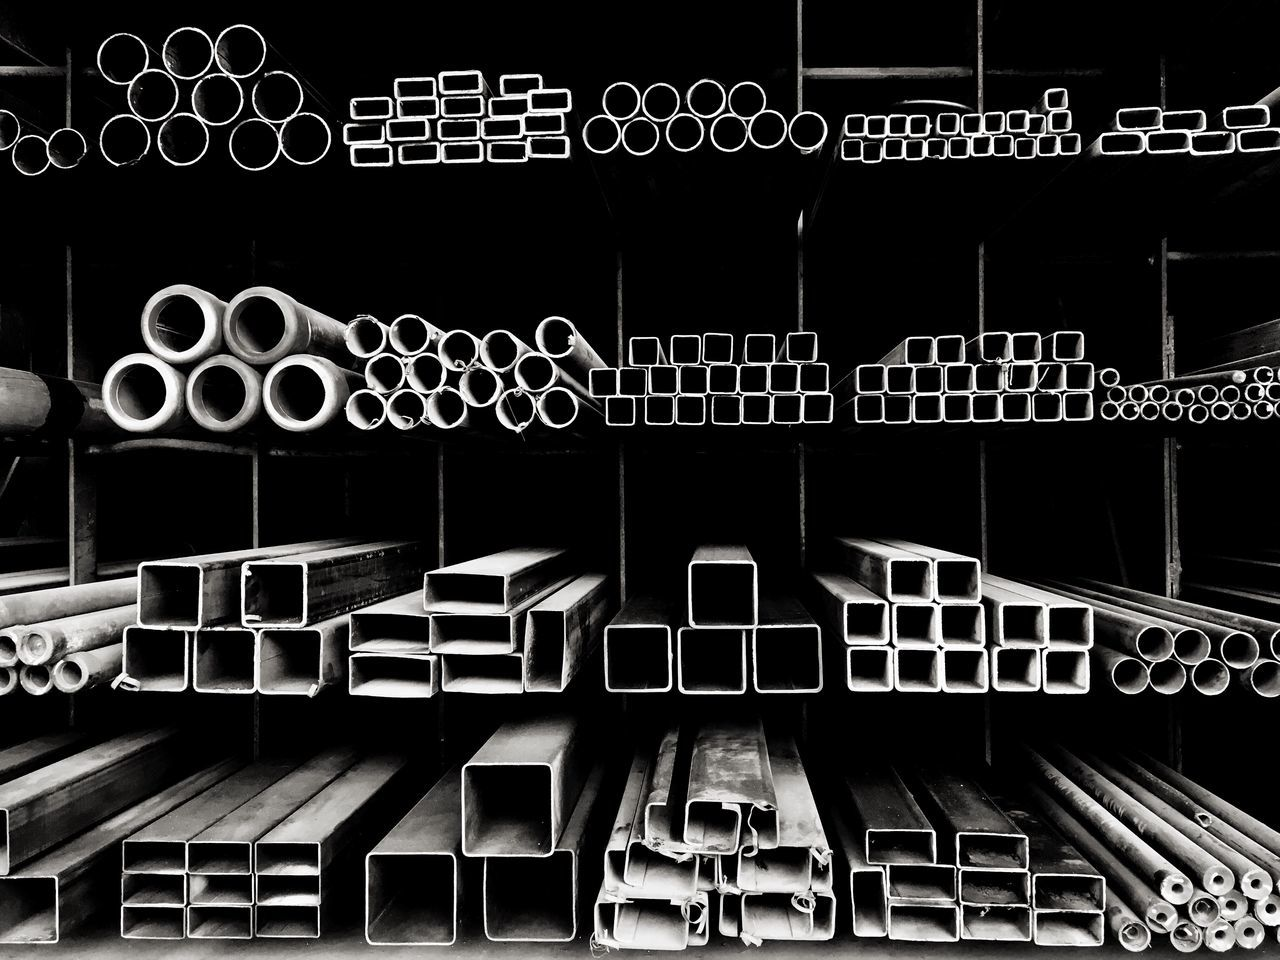 Metal bars, beams and pipes are stacked for sale at a hardware store in Bangkok. In A Row Shelf Empty Large Group Of Objects No People Repetition Pattern, Texture, Shape And Form Blackandwhite Black And White Black & White Metal Beams Beams, Pipes, Tubes Hardware Store EyeEm Best Shots EyeEm Gallery EyeEmBestPics Art Is Everywhere